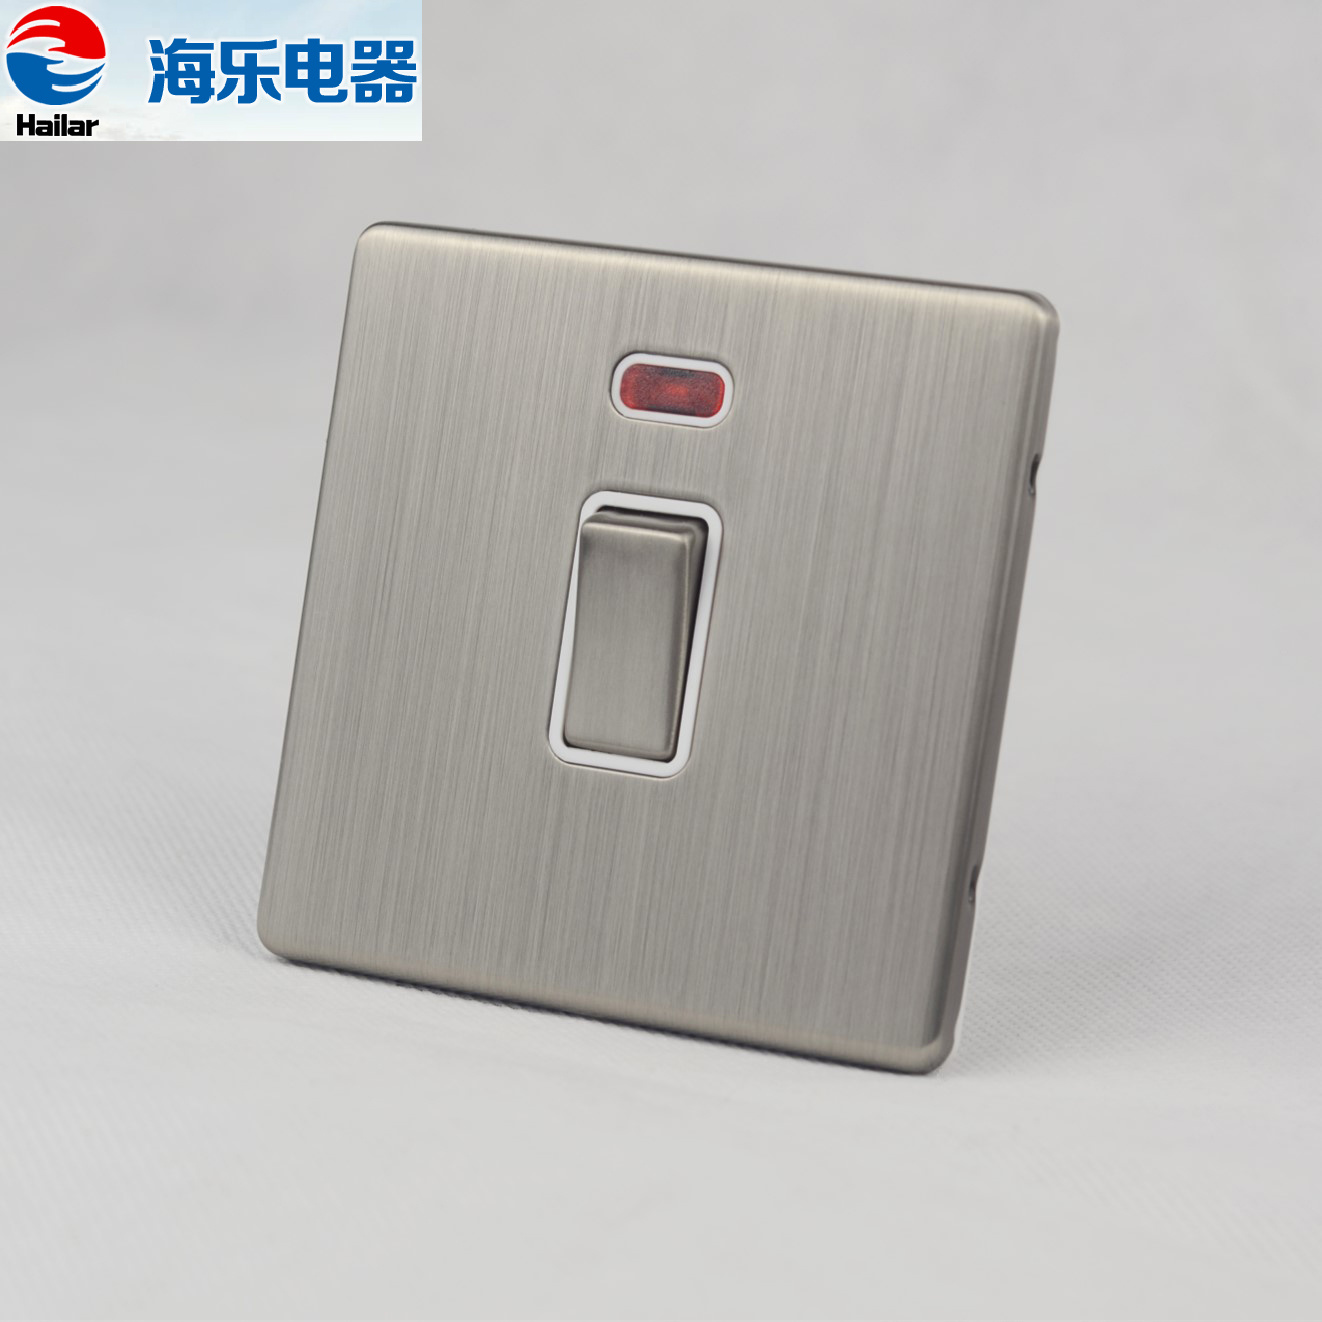 China 20a 1 Gang Double Pole Water Heater Switch With Light Switches Uk